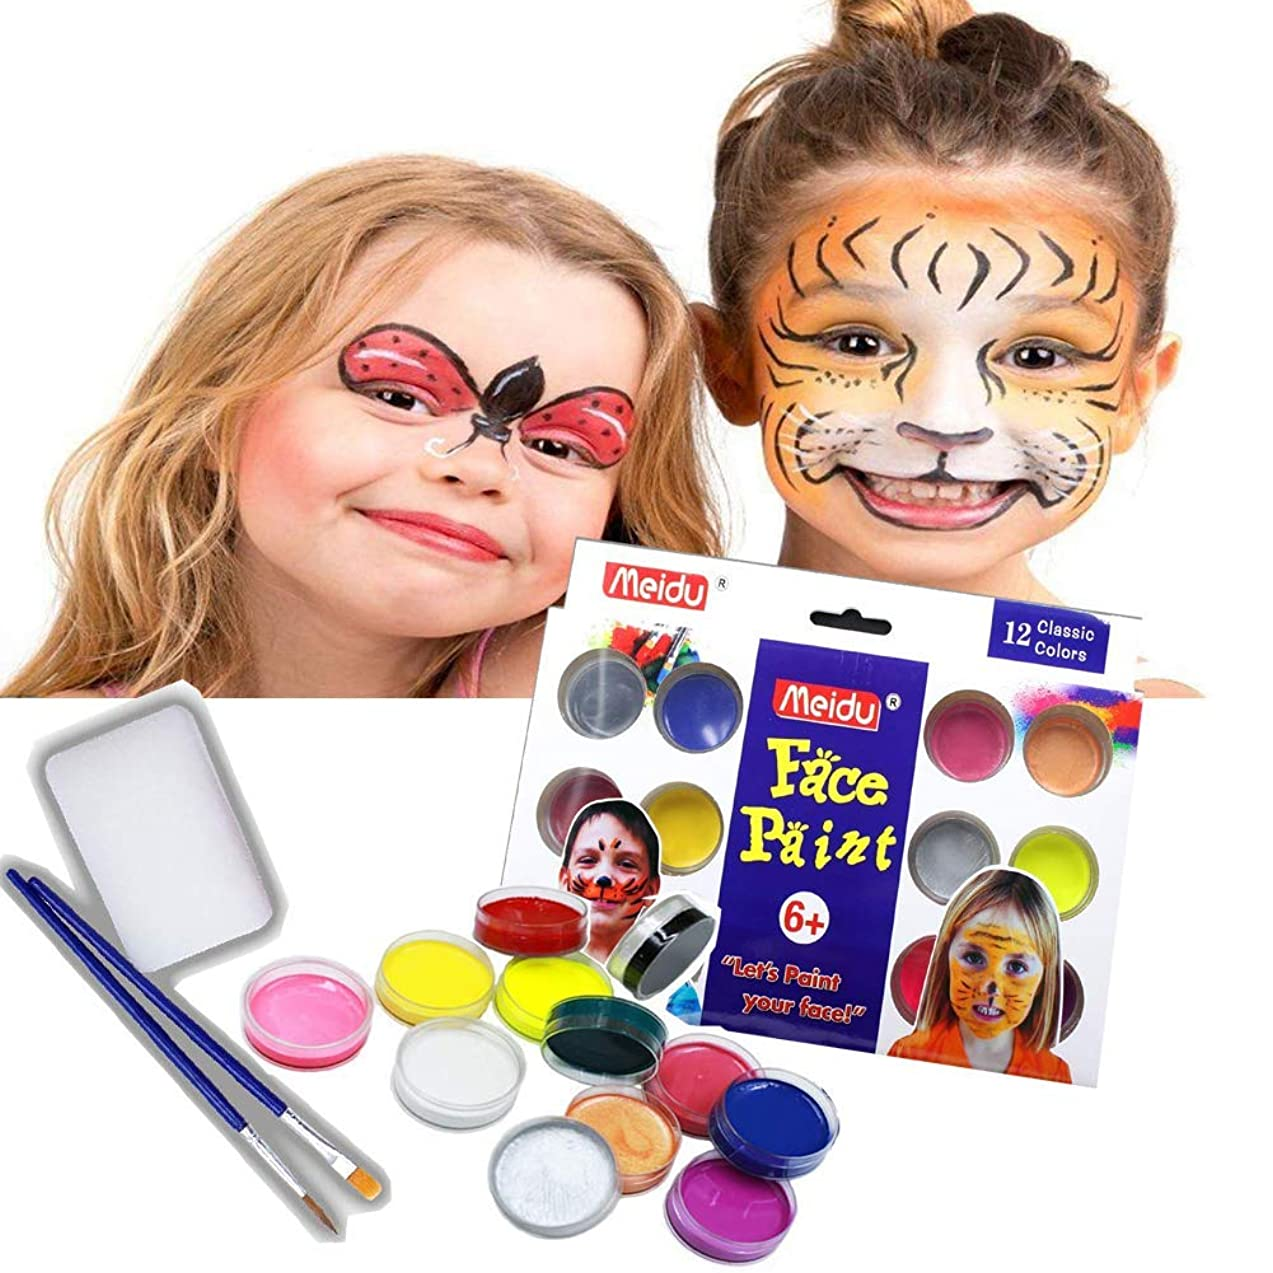 Face Paint Kit for Kids by Meidu - 12 Vibrant Colors & 2 Brush for Halloween No Skin Damage,Certified-Safe for Kid's Skin & Easy to Painting and Washing Professional Paint